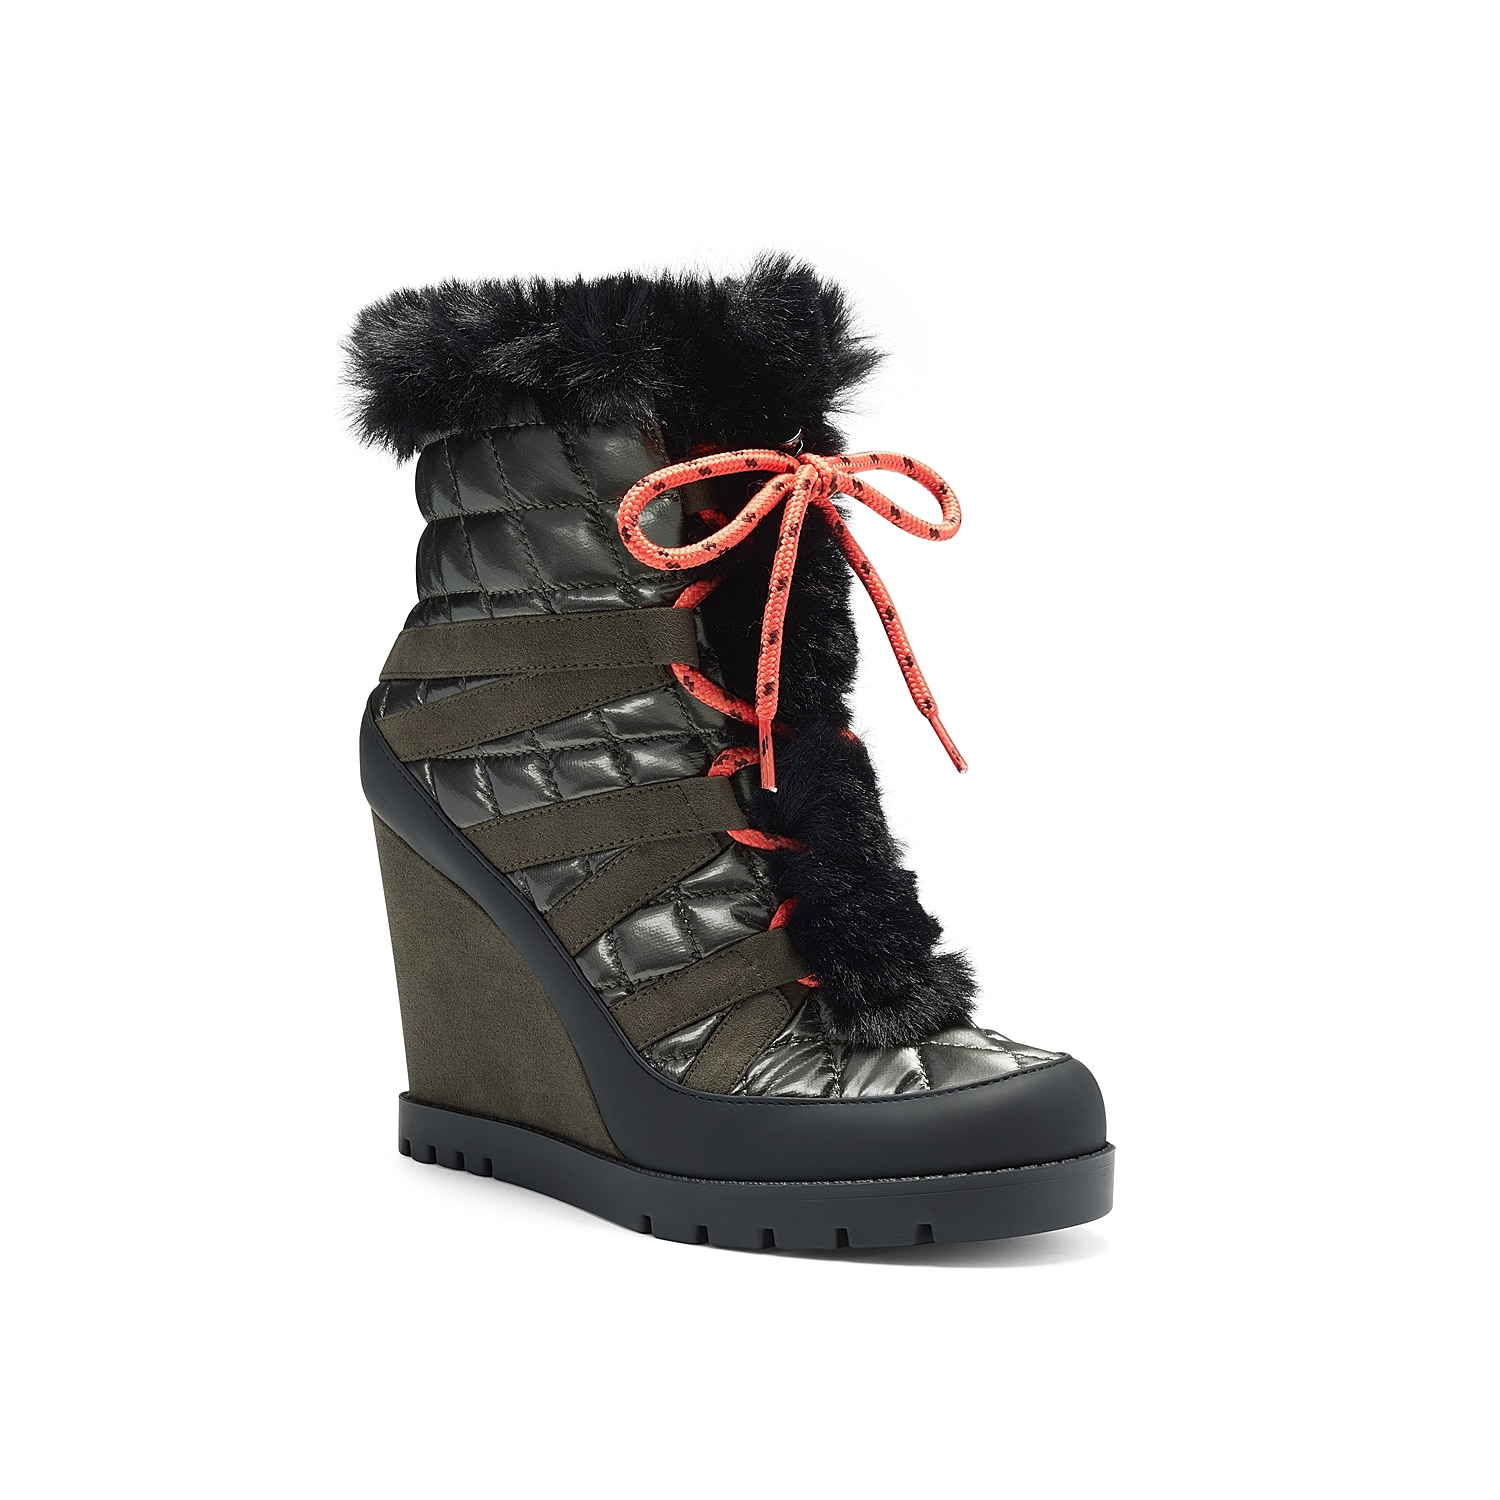 Wrap your foot in the edgy style and warmth of Brixel wedge bootie by Jessica Simpson. This lace-up bootie boasts a quilted upper, fluffy lining and trim, and a high wedge heel with traction rubber sole.Click here for Boot Measuring Guide.